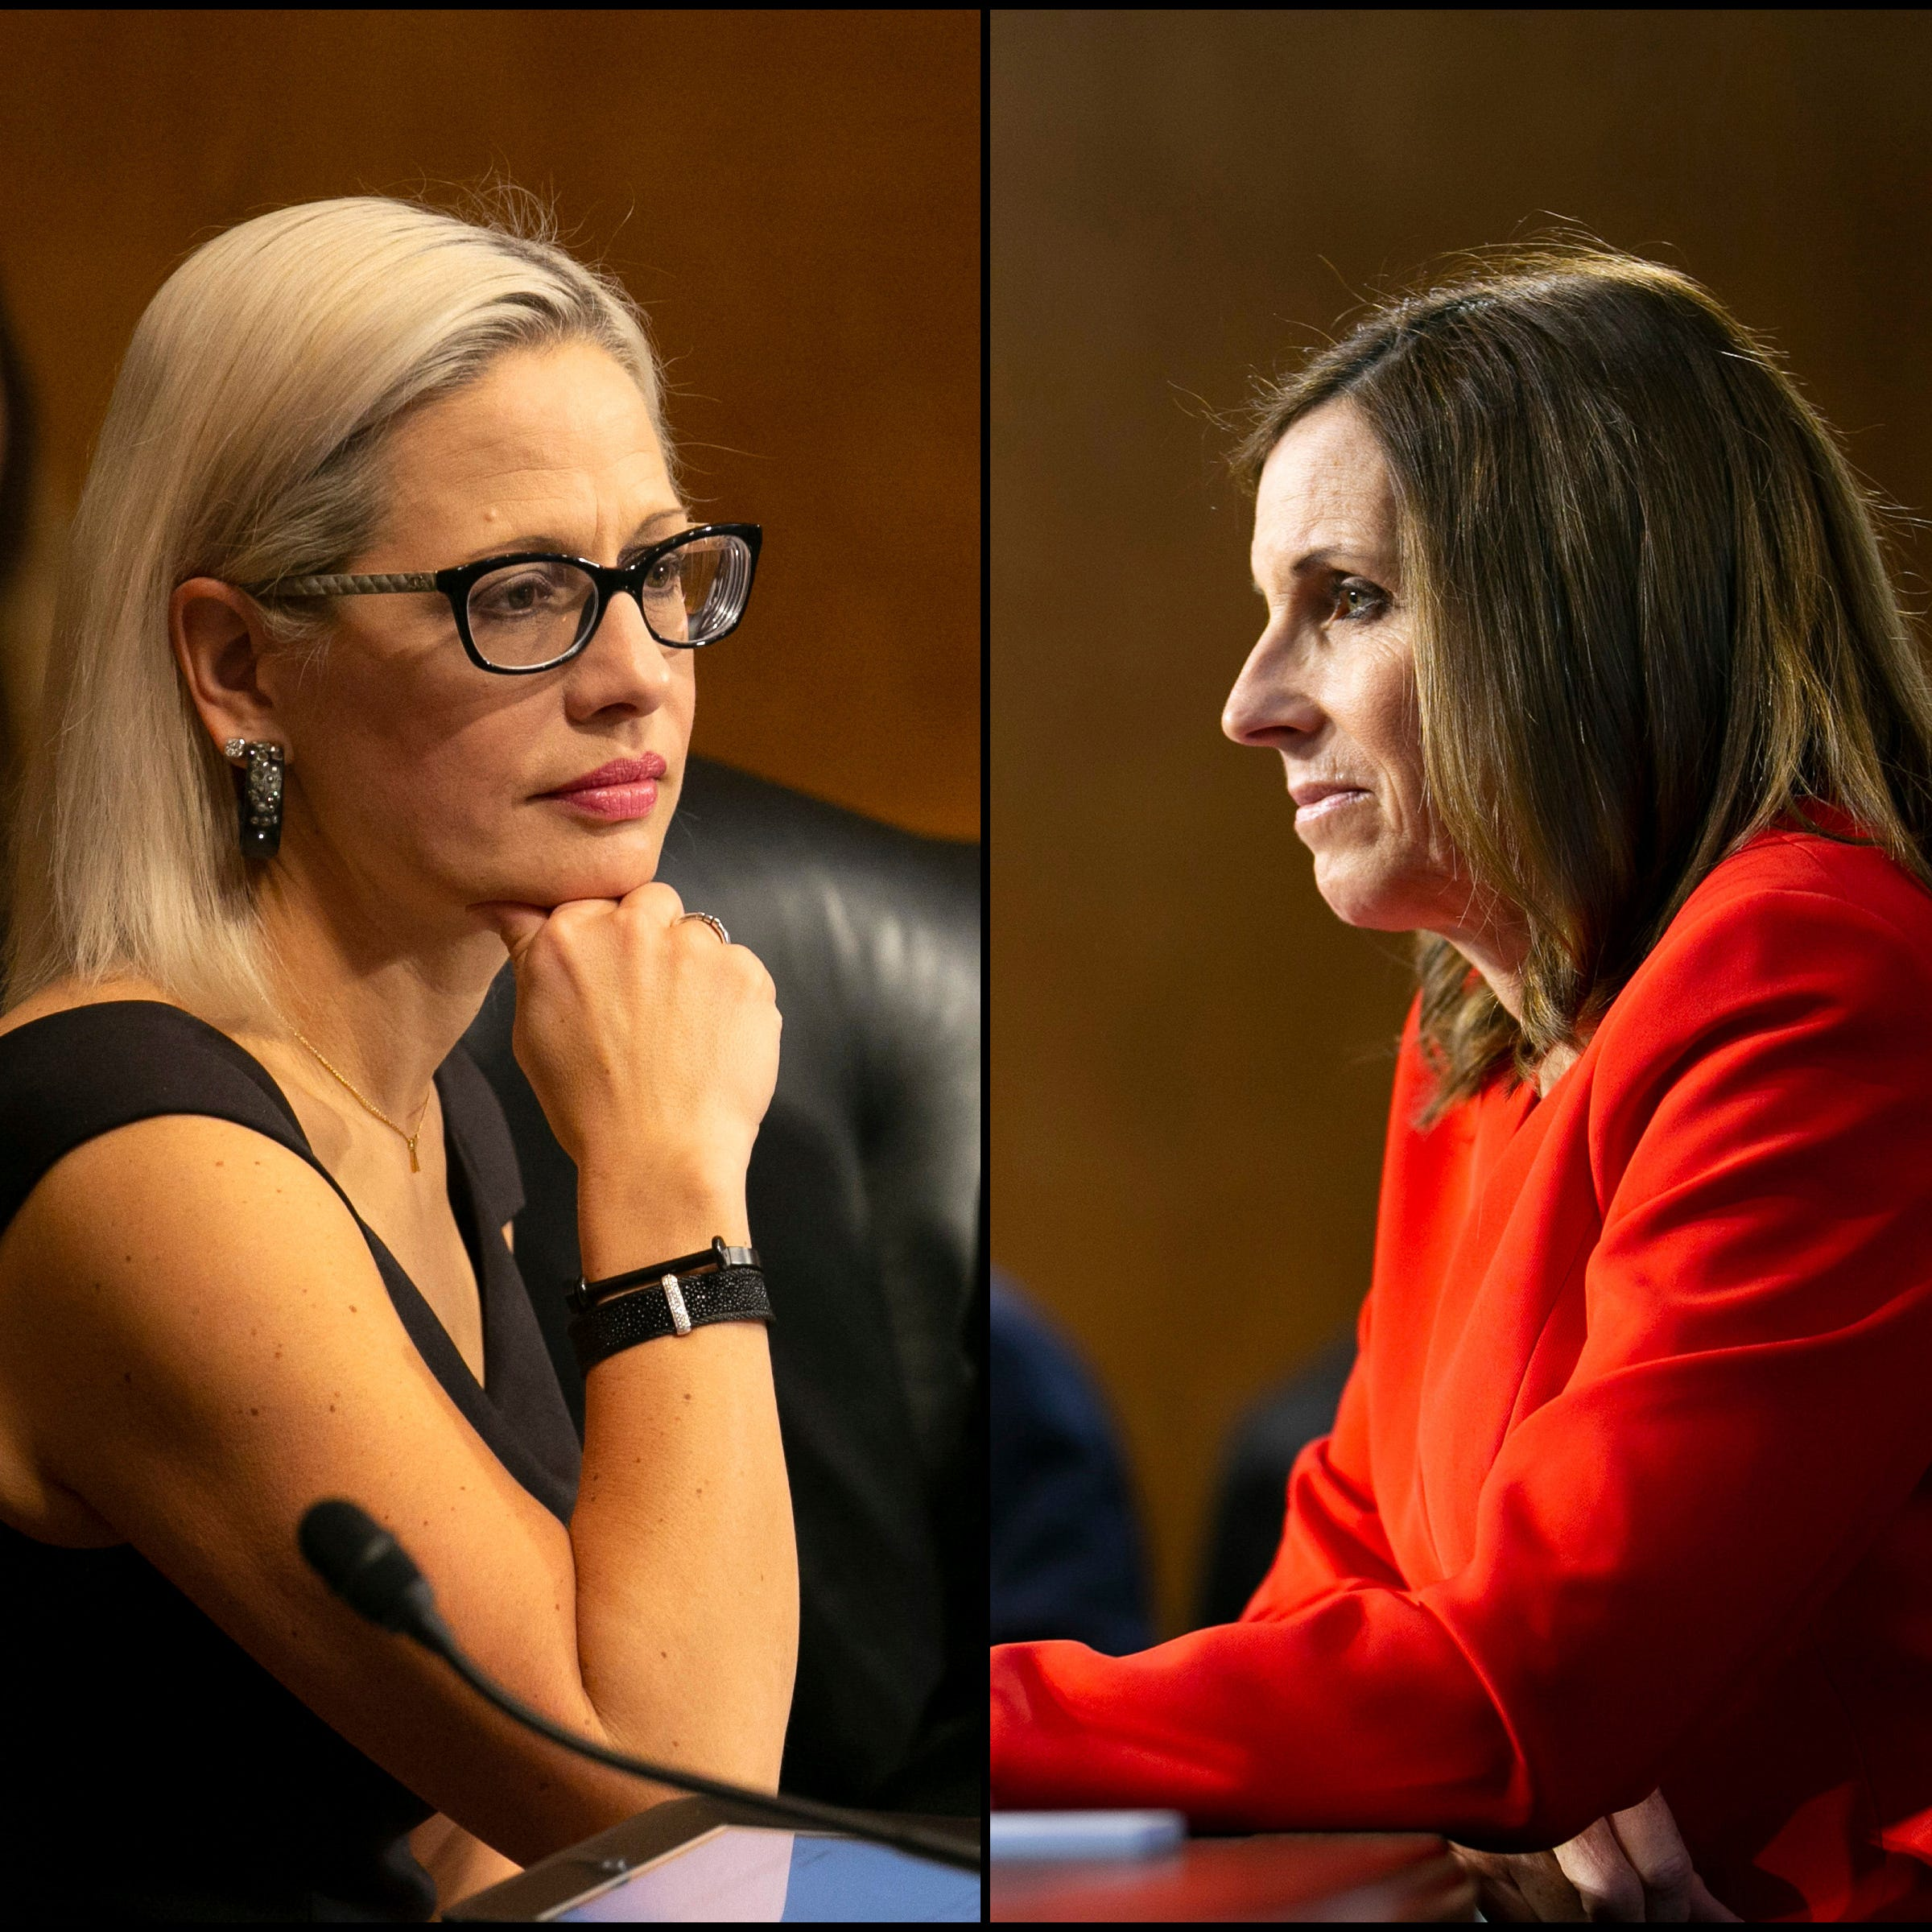 Here's how Sens. Kyrsten Sinema and Martha McSally voted on Trump border emergency rebuke